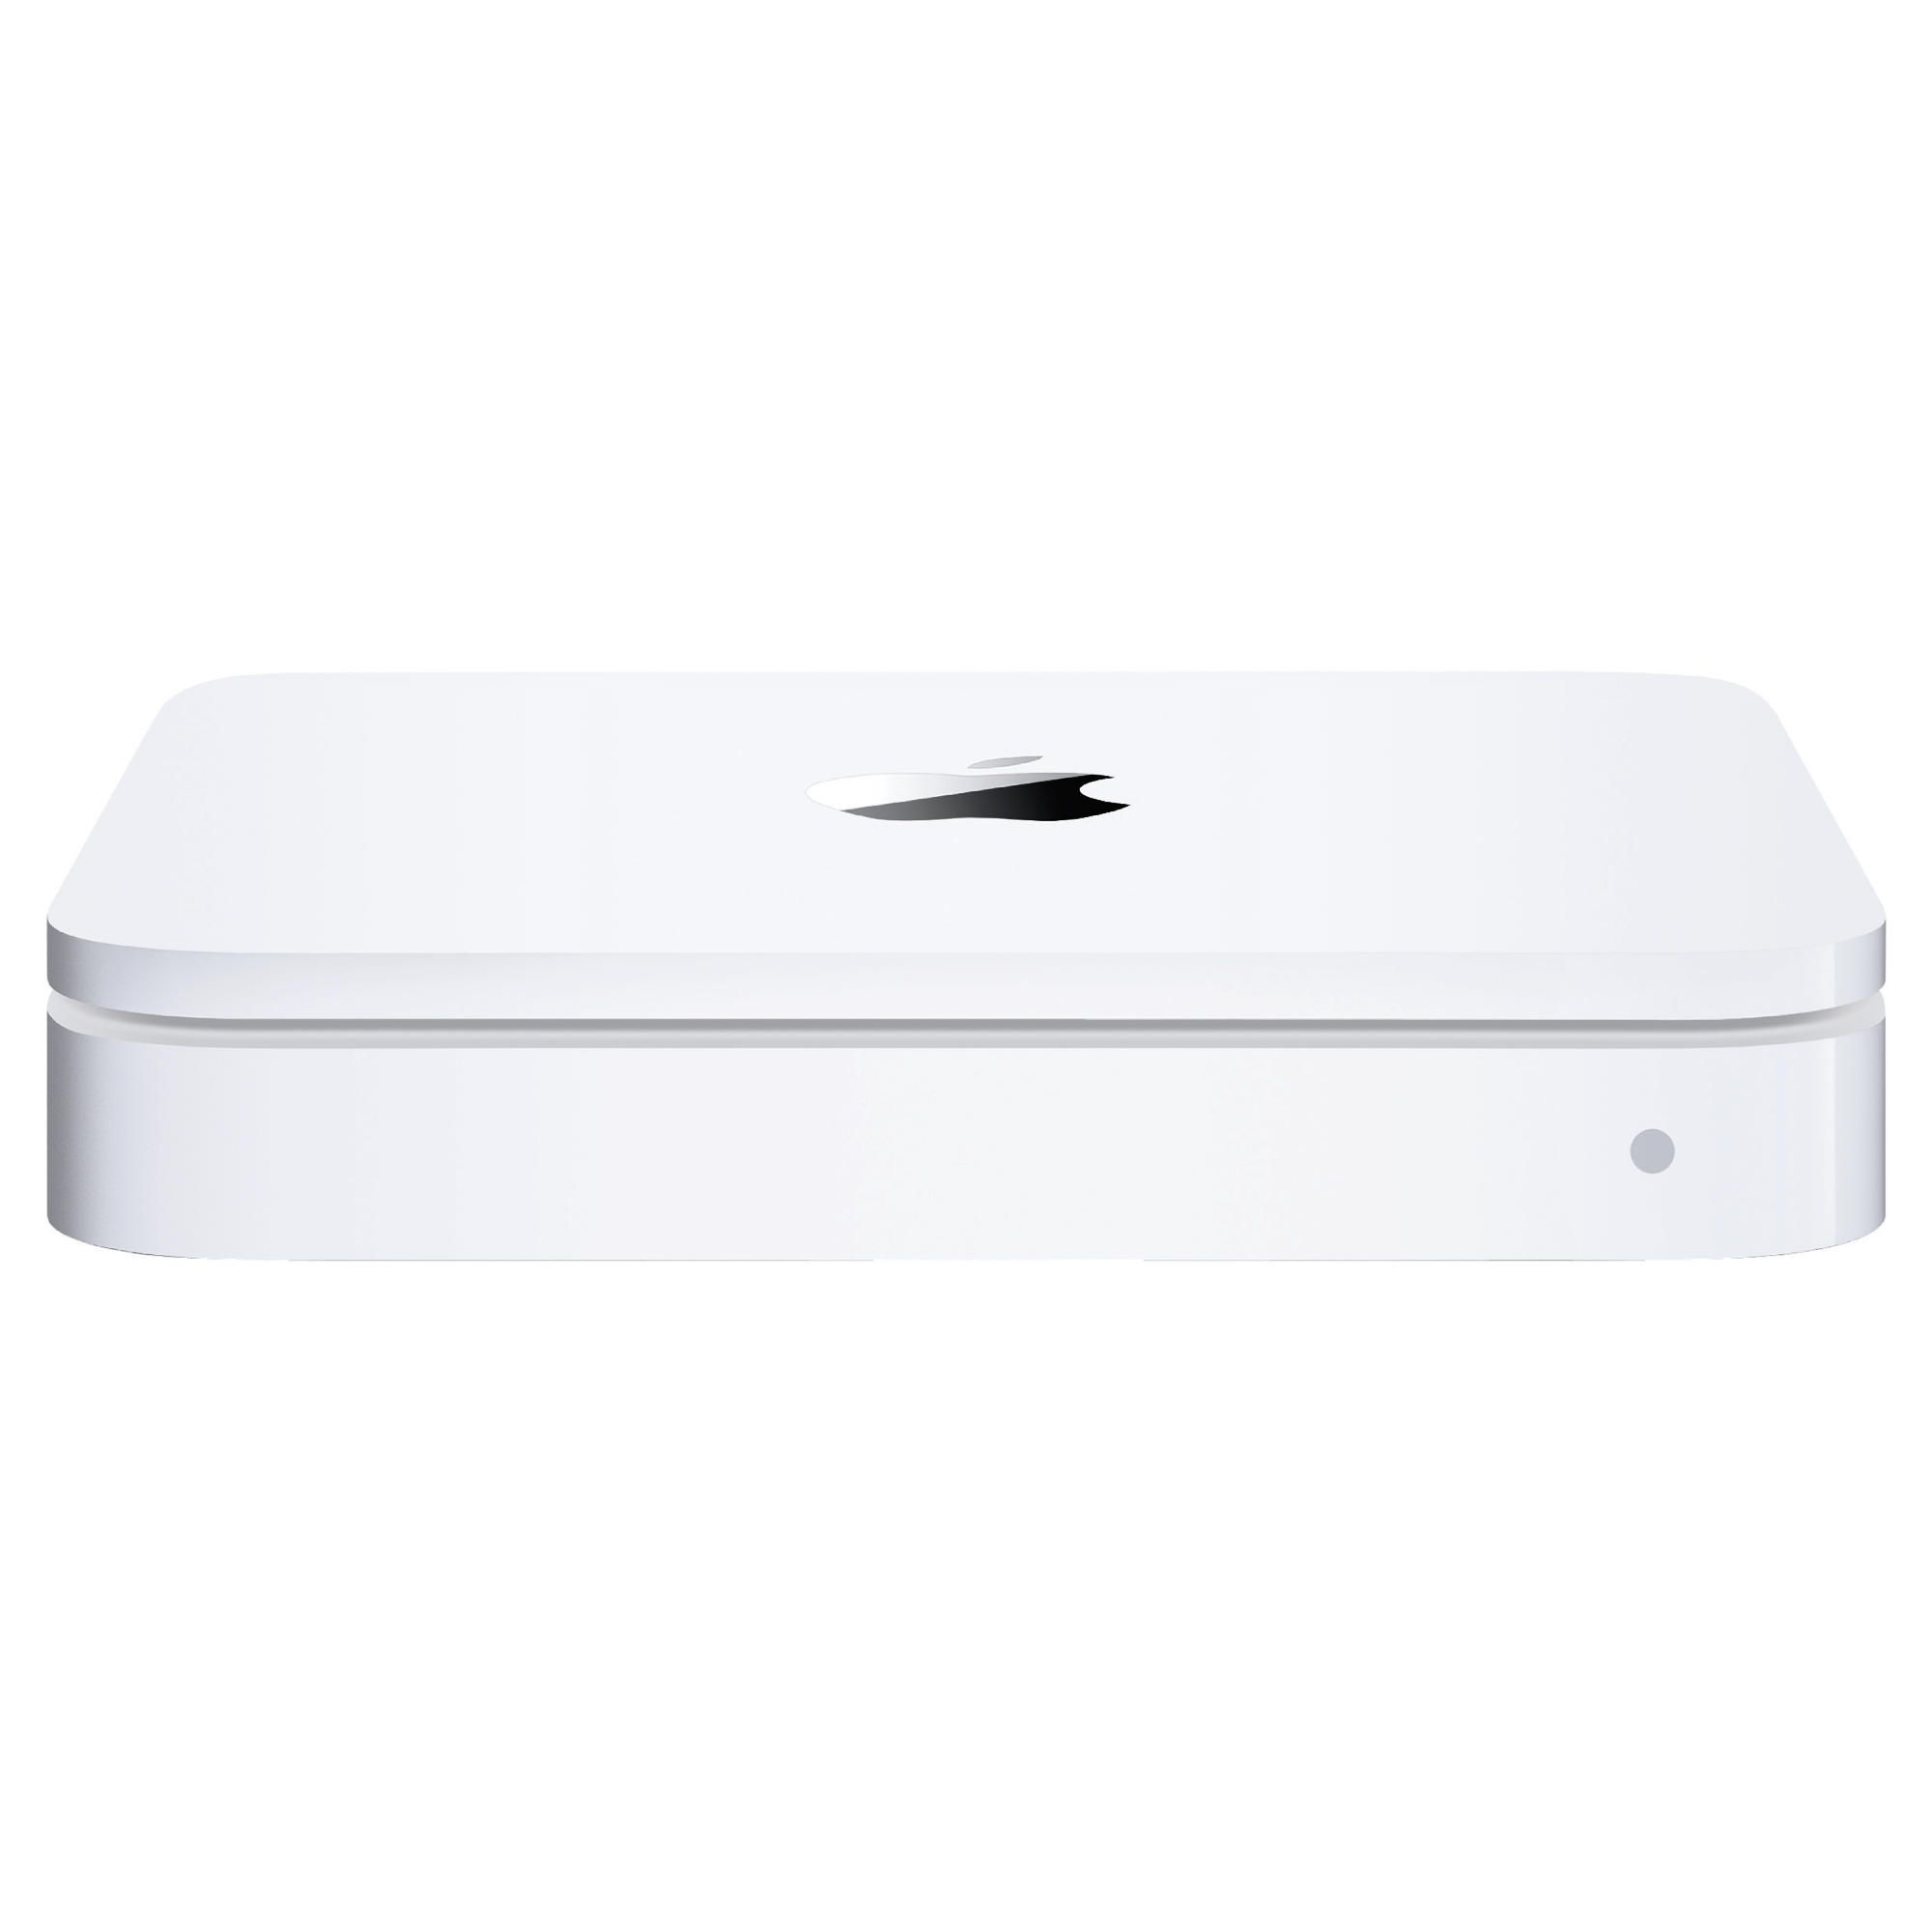 Apple Time Capsule 2TB Hard Drive at Tesco Direct